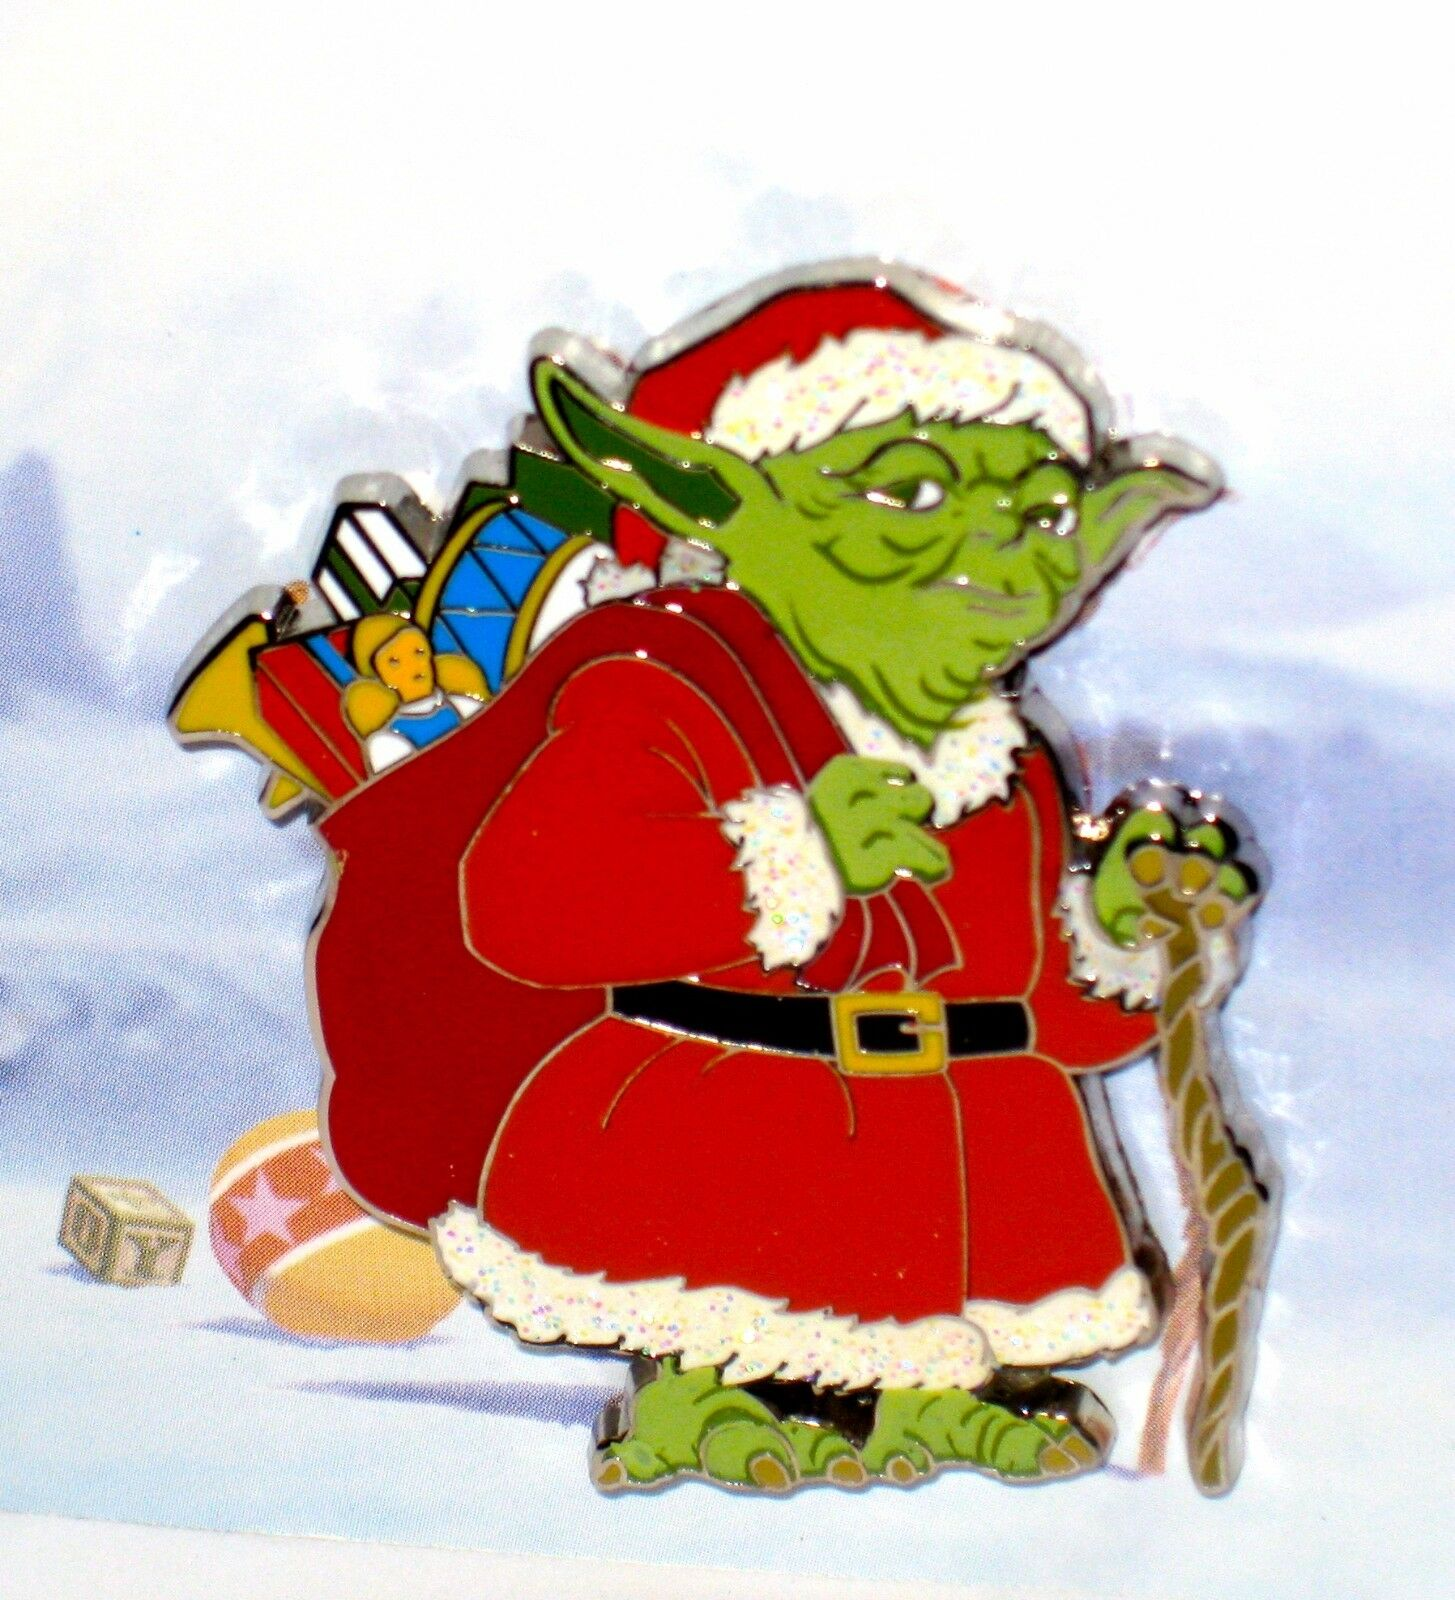 disney pinstar wars yoda santa toys silent jedi knight night christmas card new 1 of 5only 1 available disney pinstar wars